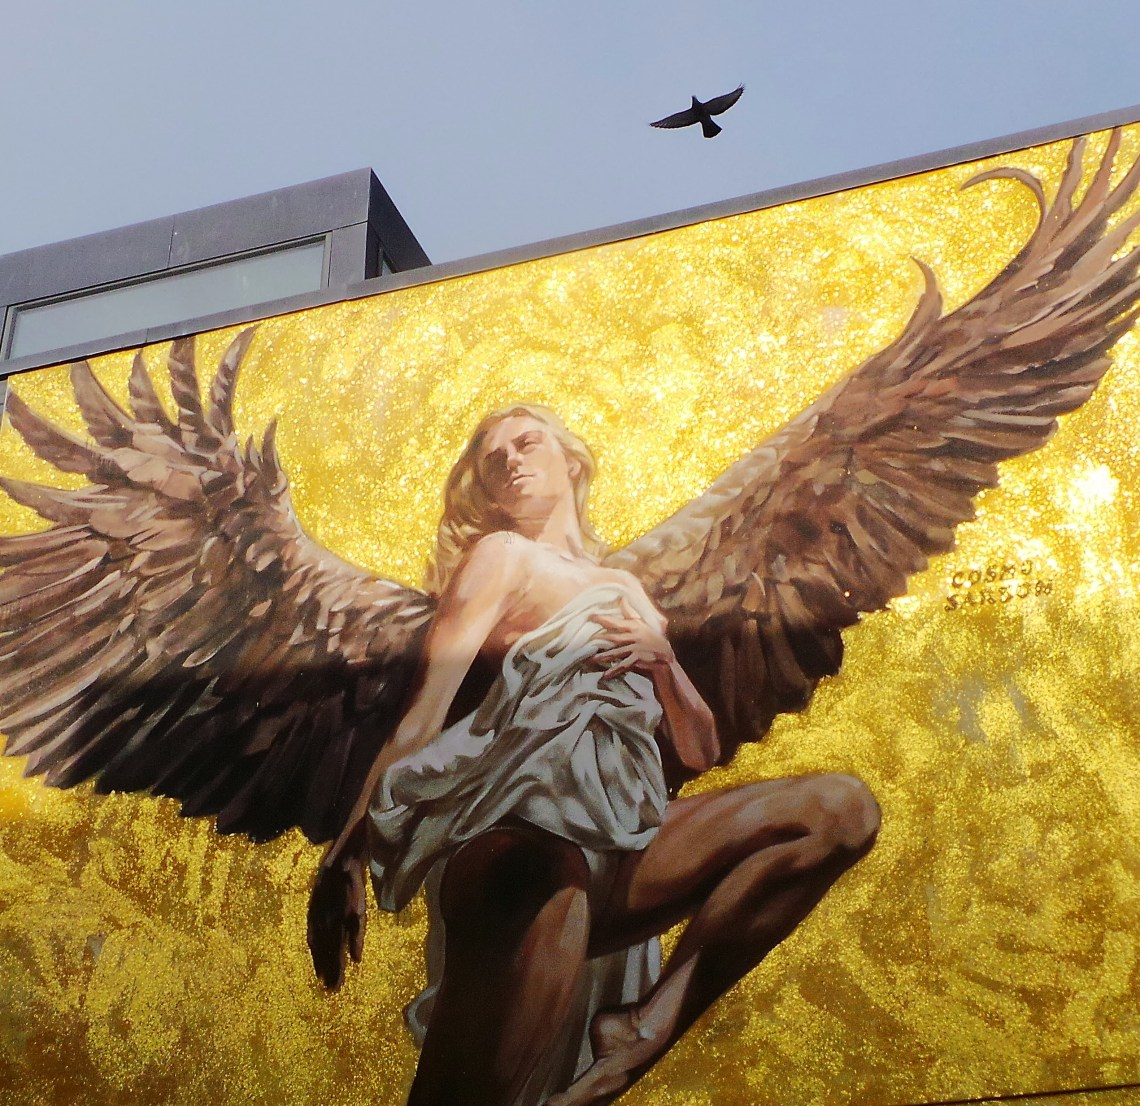 The Angel Mural by Cosmo Sarson